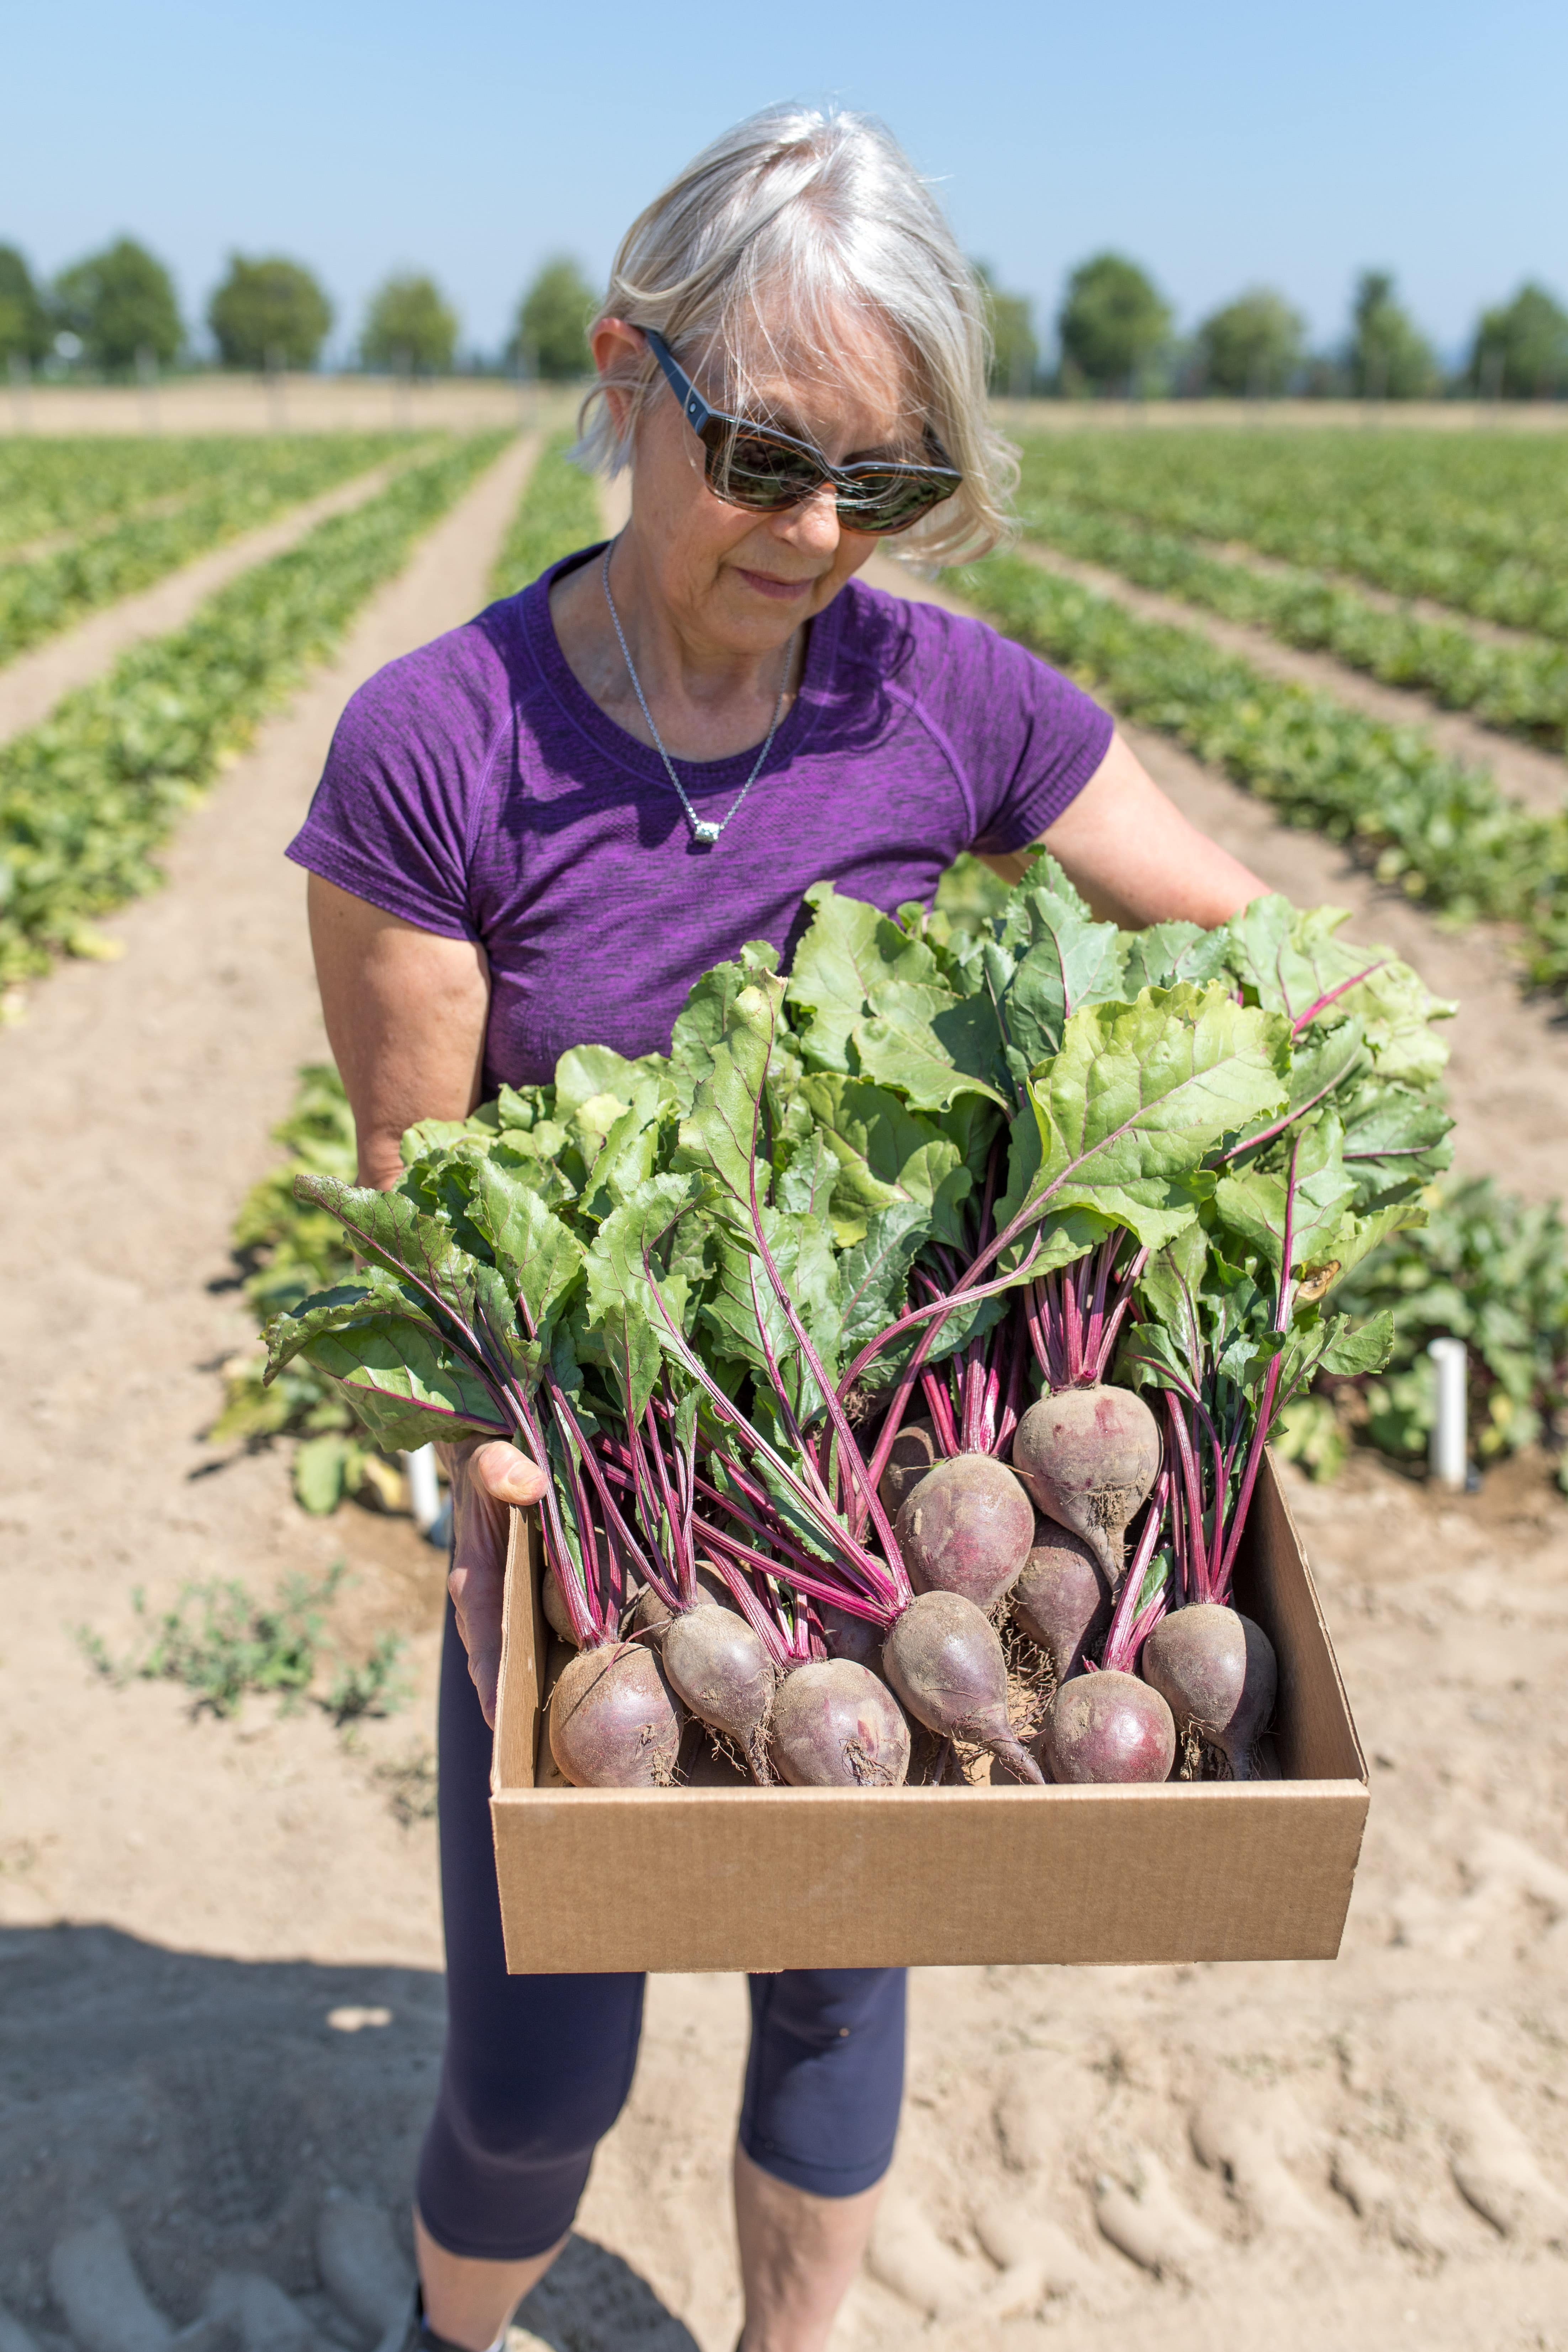 woman holding box of beets at a farm